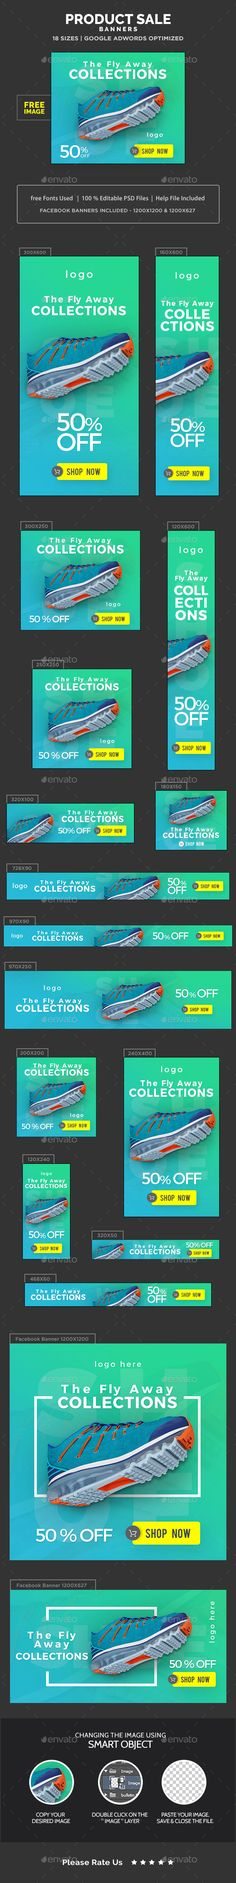 Product Sale Banners Design Template - Images Included - Banners & Ads Web Elements Template PSD. Download here: https://graphicriver.net/item/product-sale-banners-images-included/17741125?s_rank=2&ref=yinkira